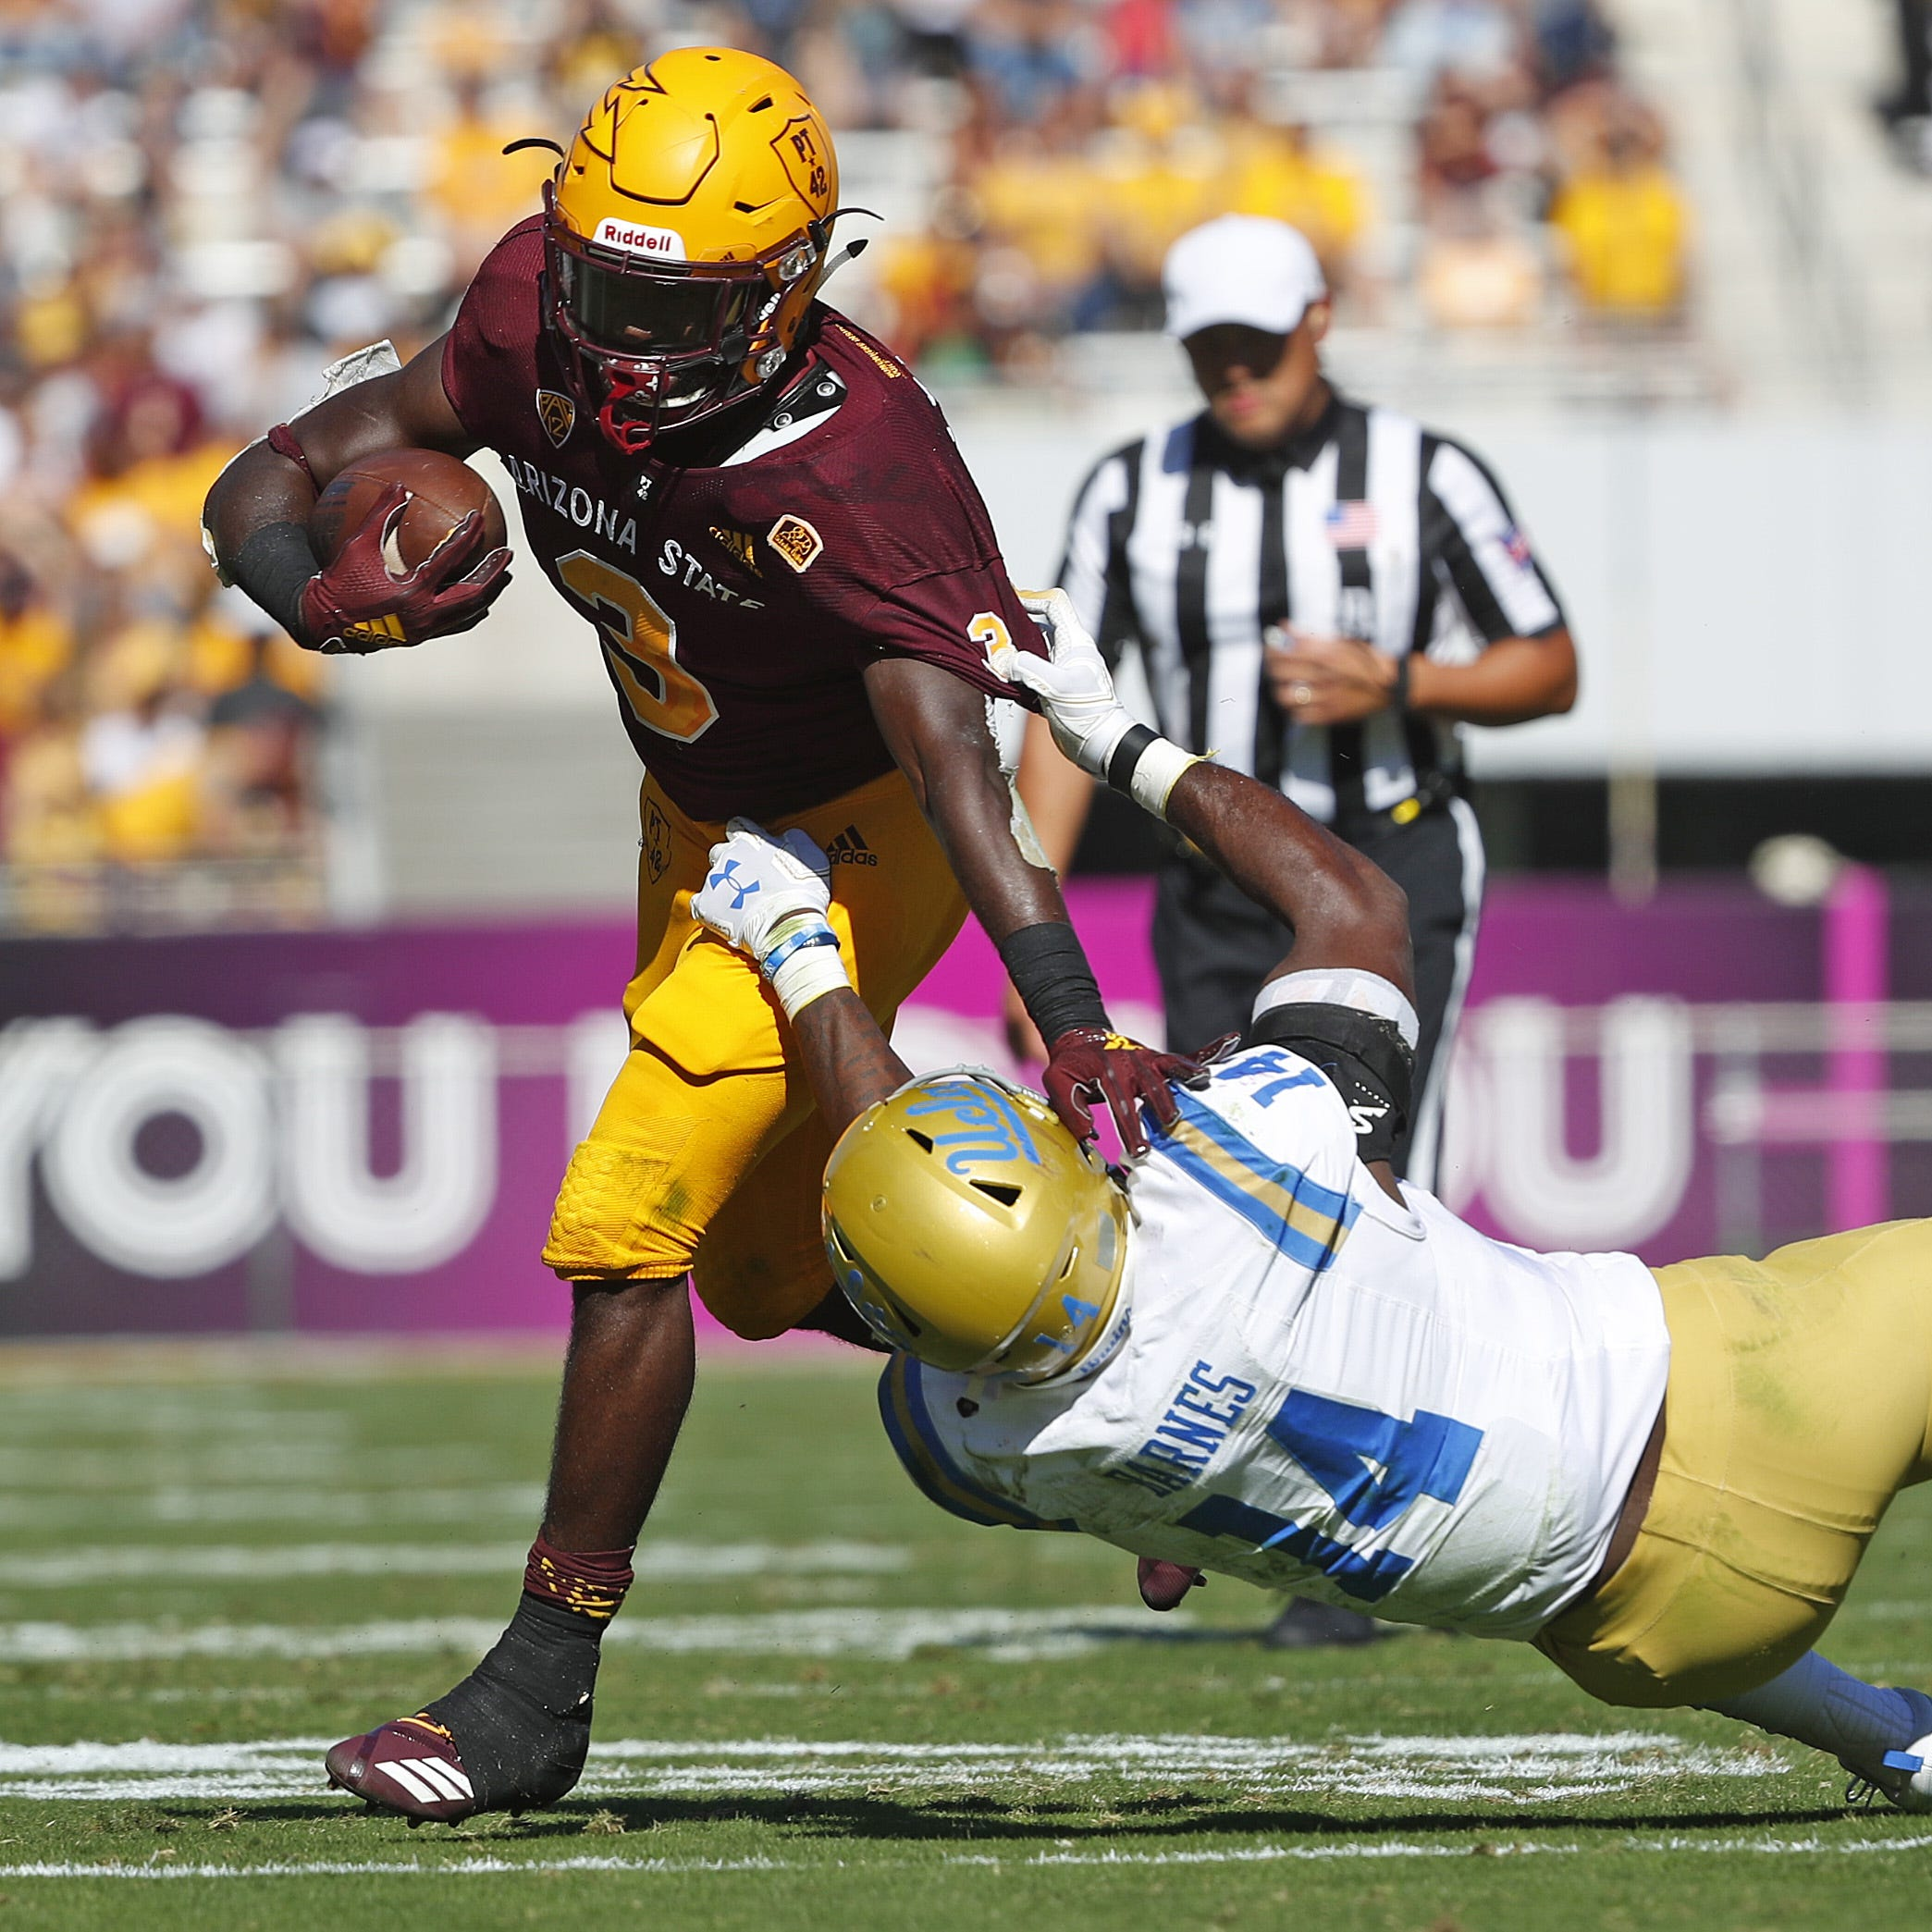 ASU football rewind: What we learned from home win over UCLA